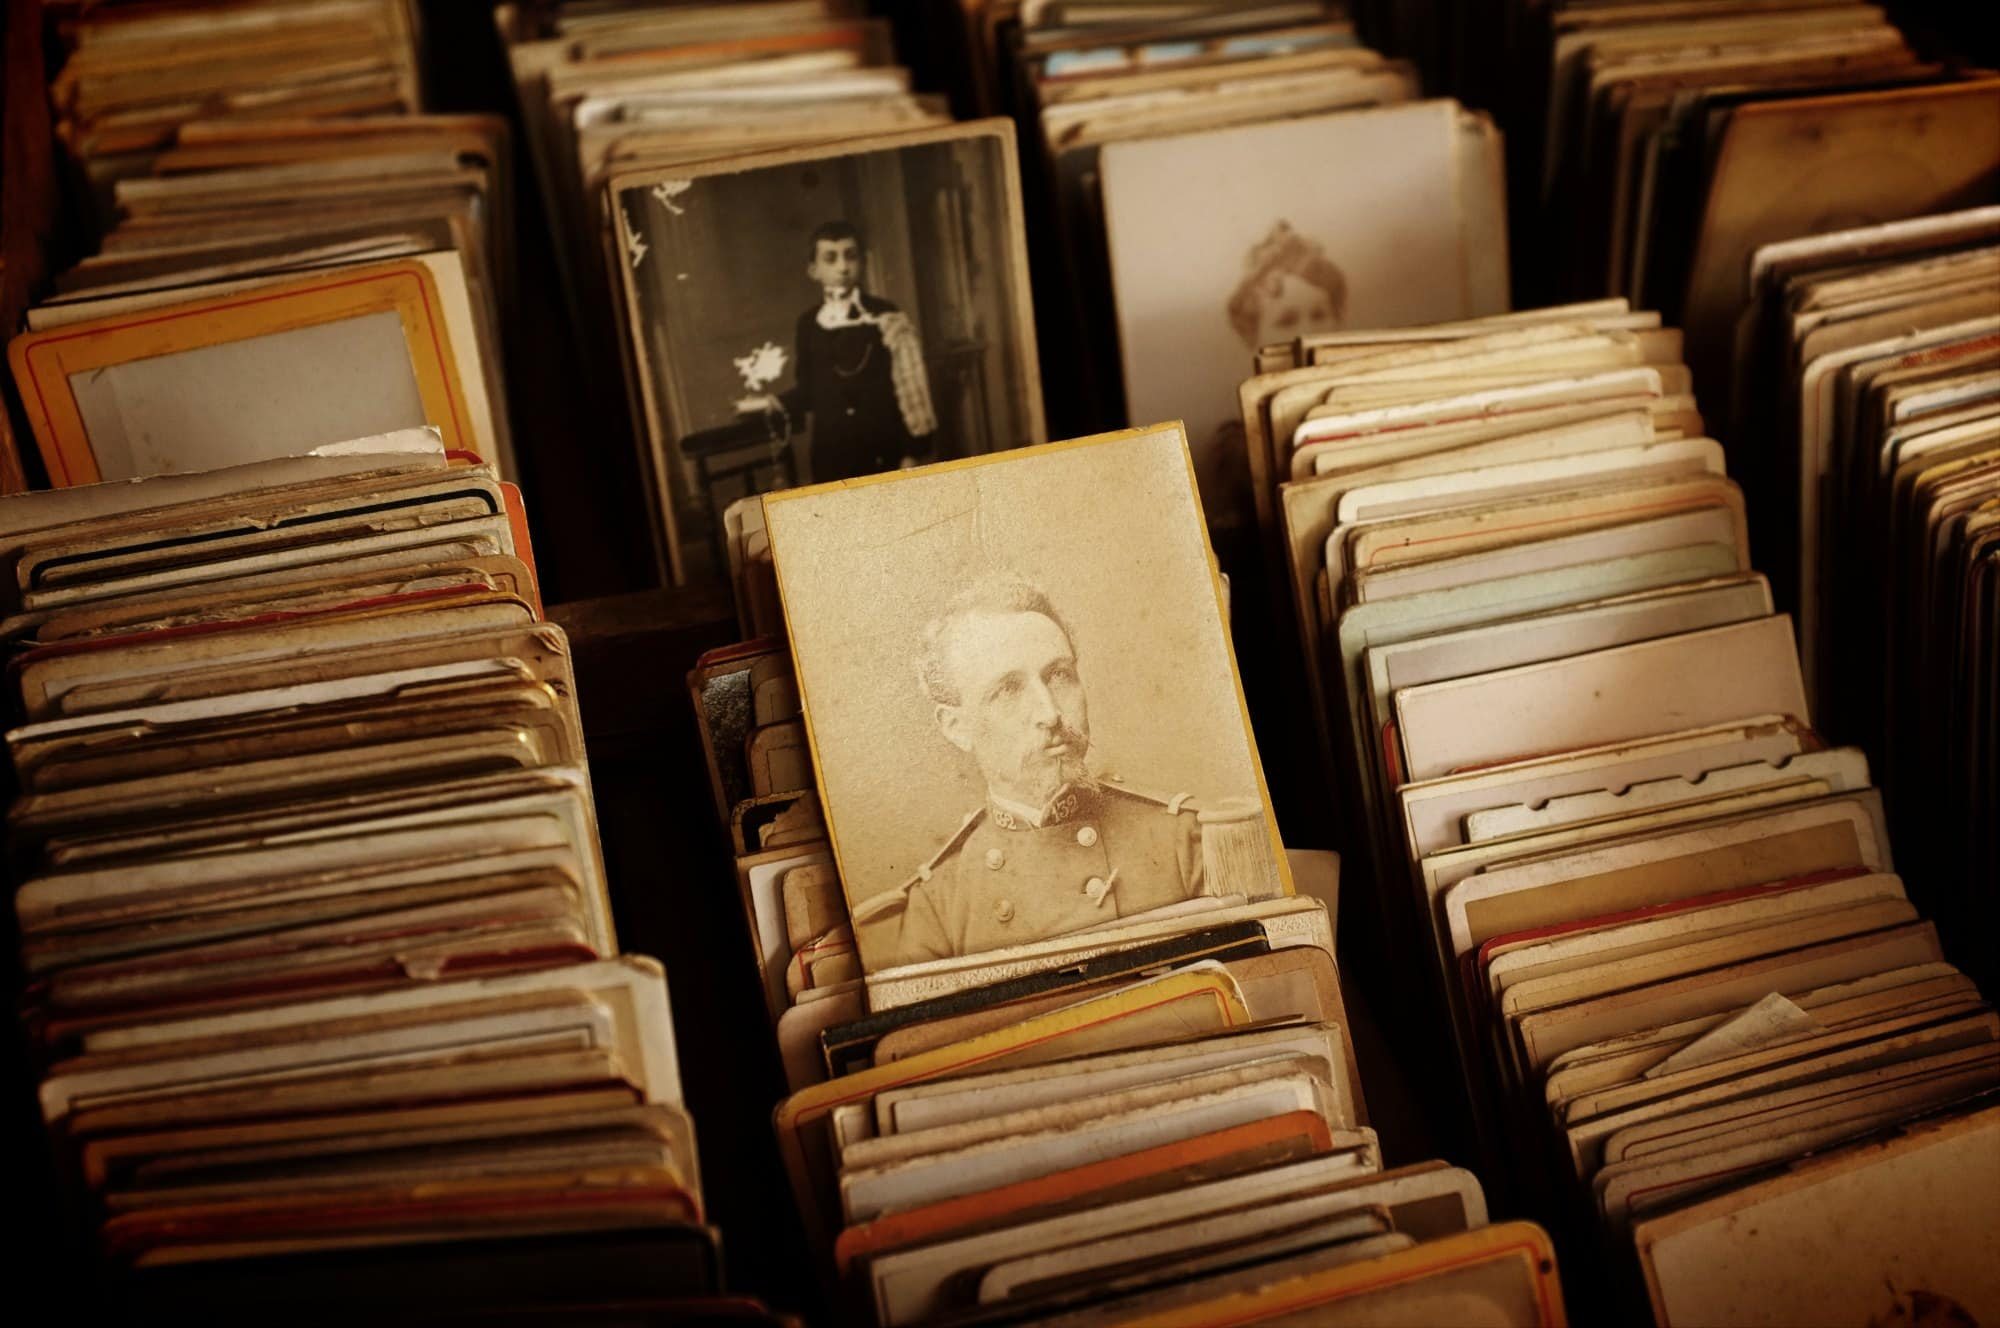 World's best vintage markets to source for precious antiques